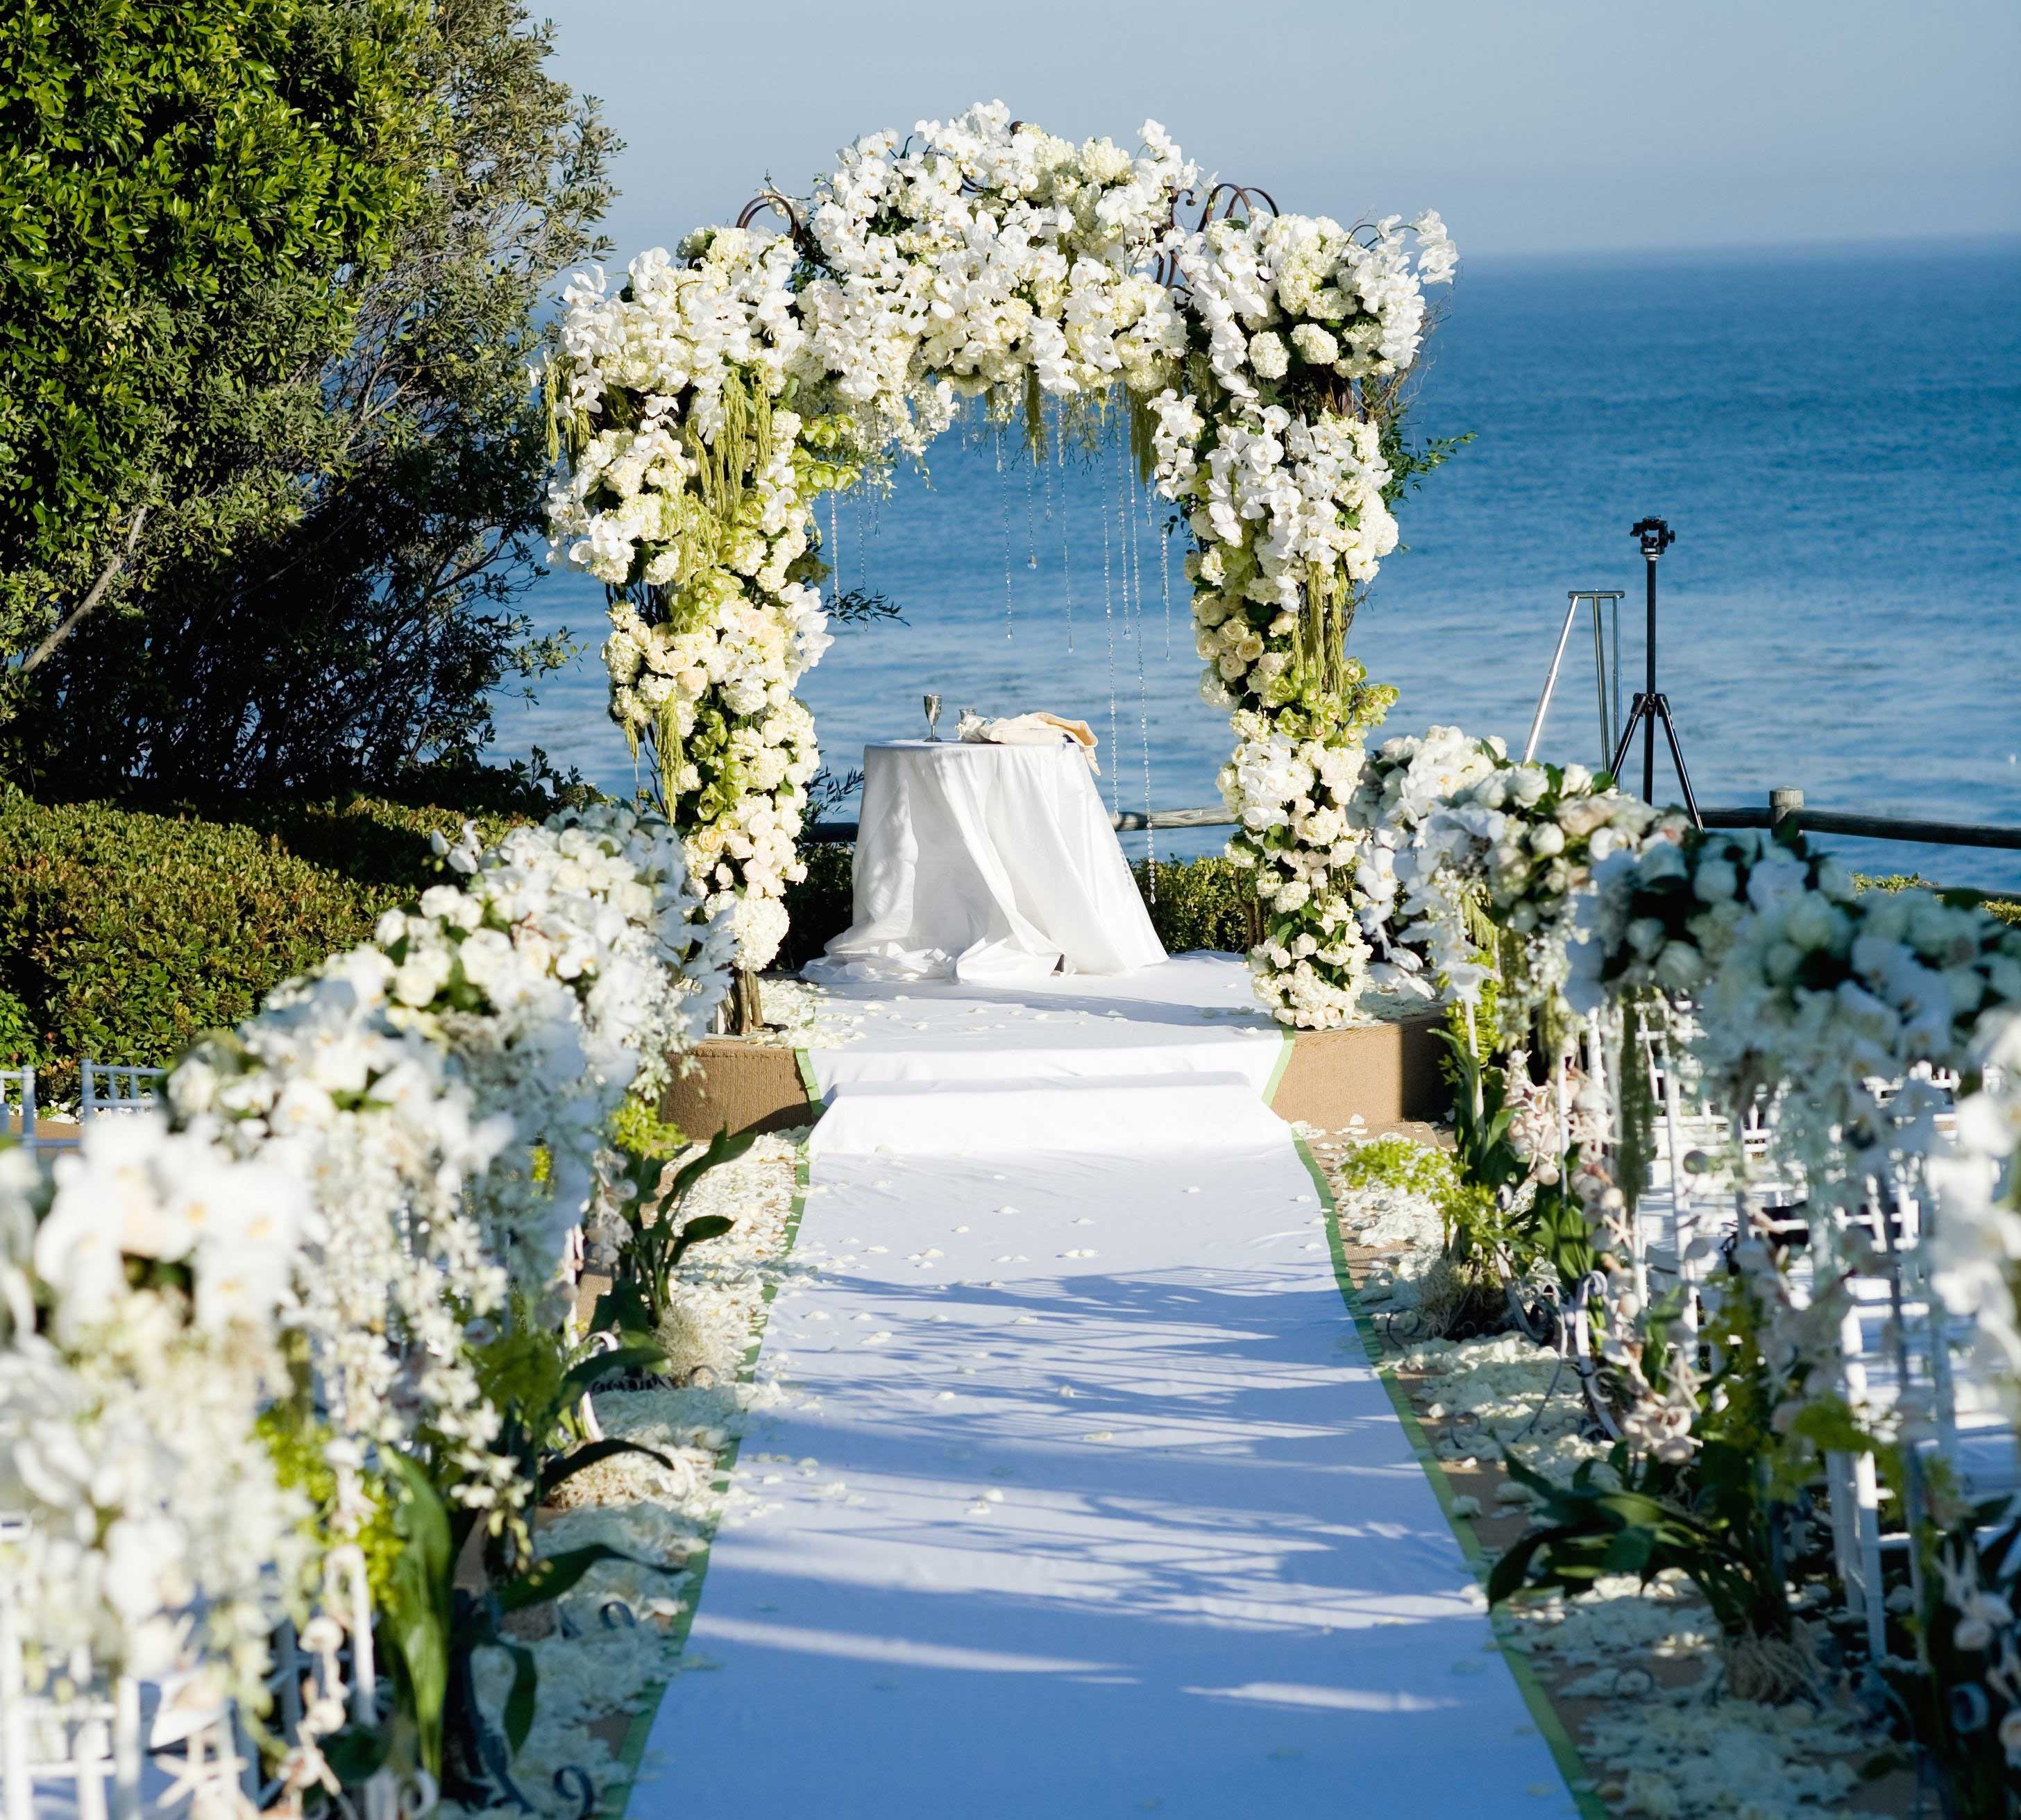 Beach Wedding Flower Ideas: Wedding Ceremony Ideas: Flower-Covered Wedding Arch